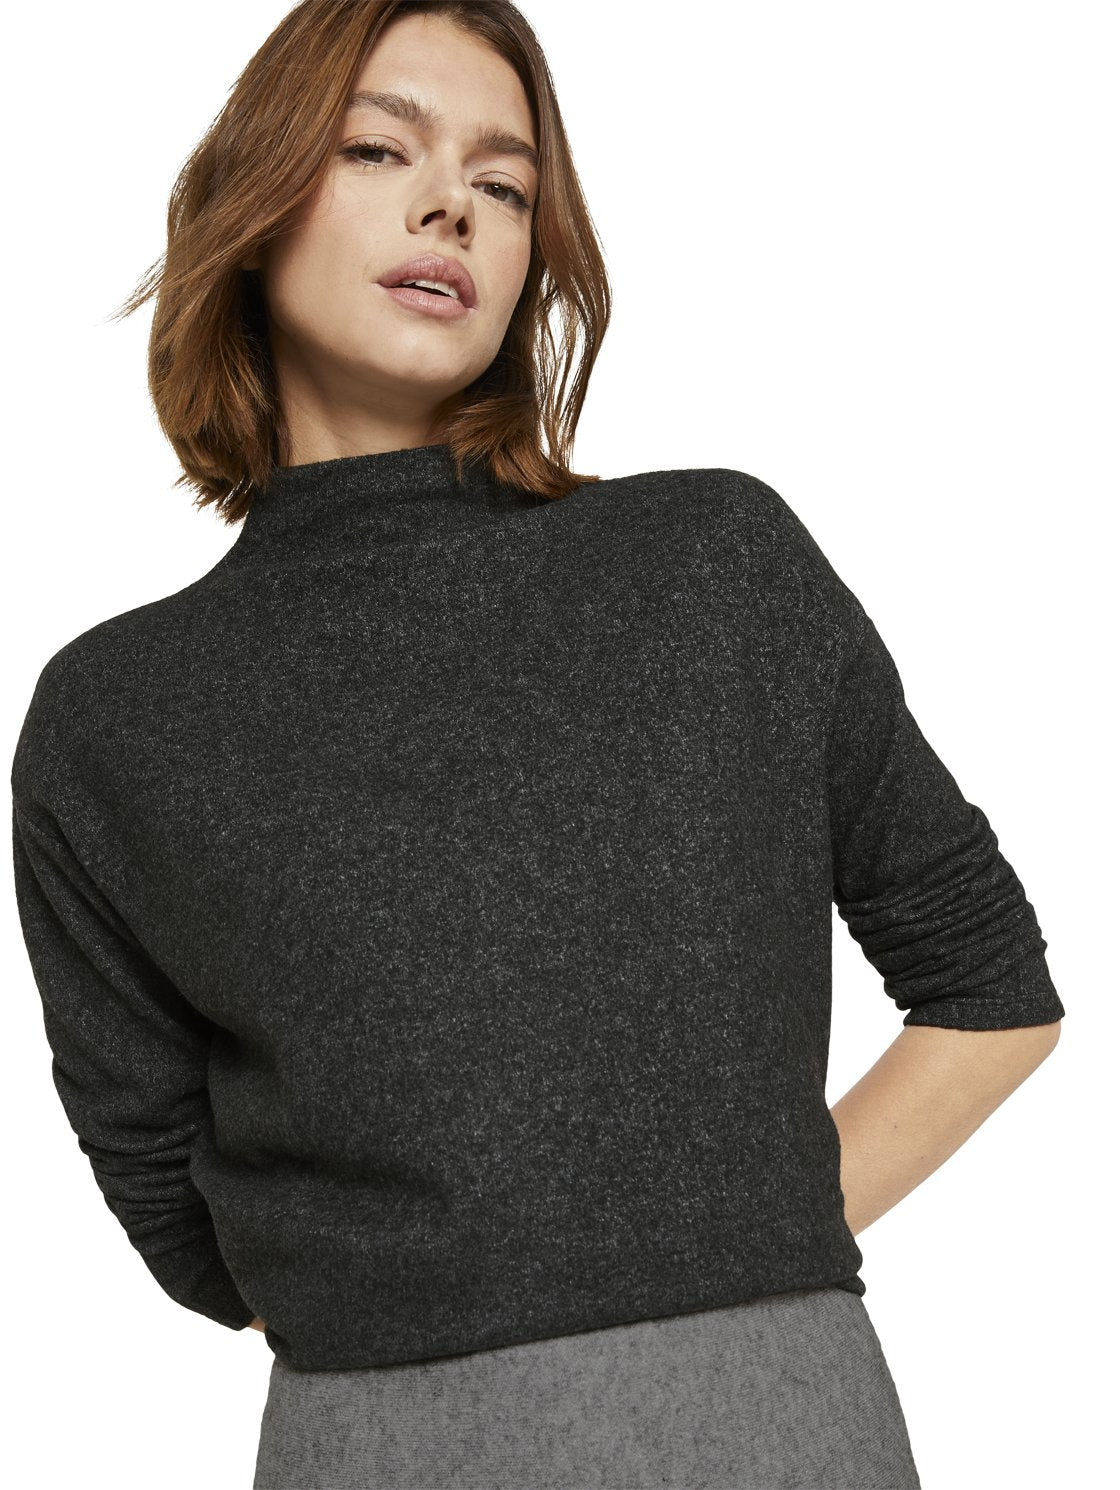 Tom Tailor charcoal top 1021113